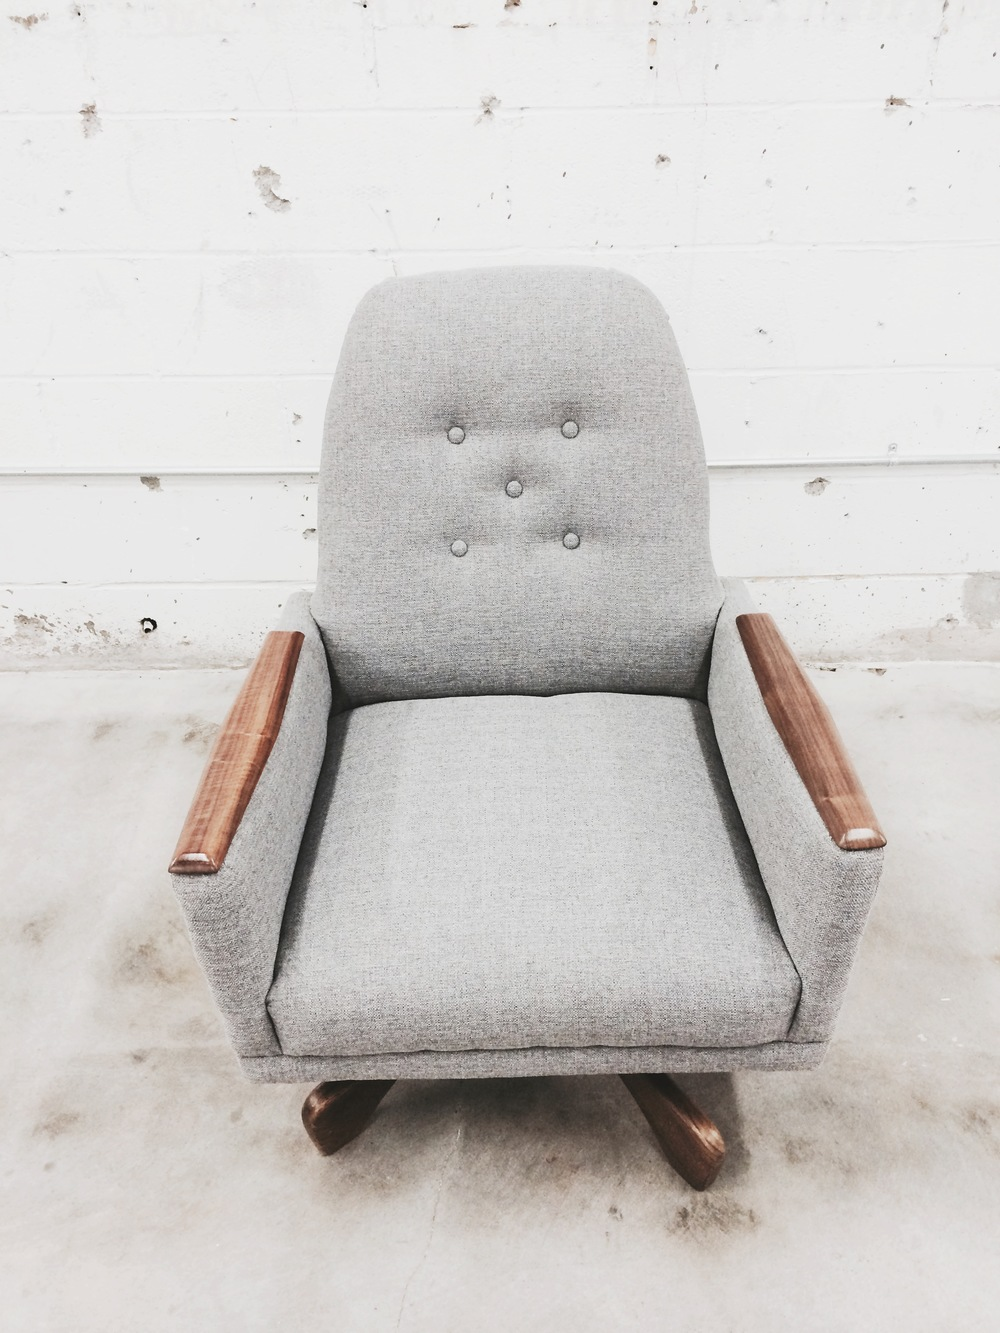 reupholsteredrockingchair